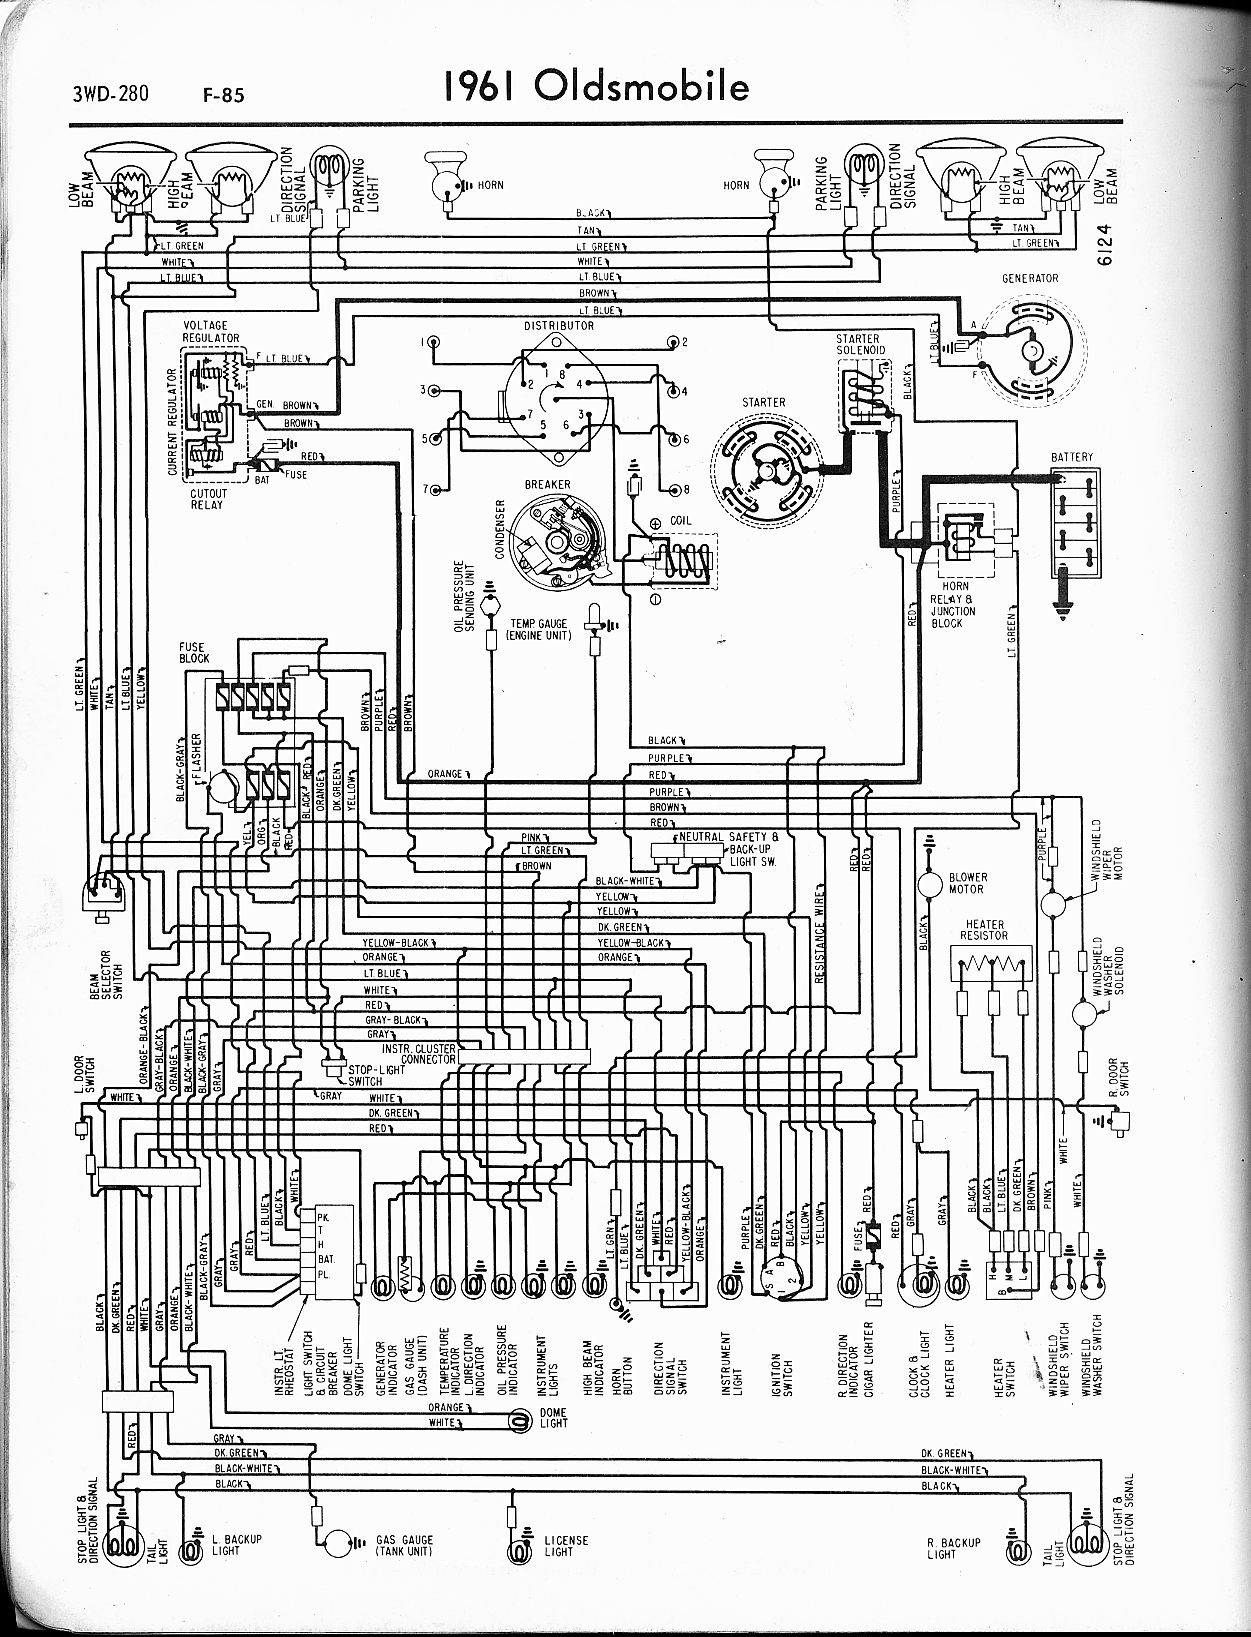 MWire5765 280 oldsmobile wiring diagrams the old car manual project  at reclaimingppi.co